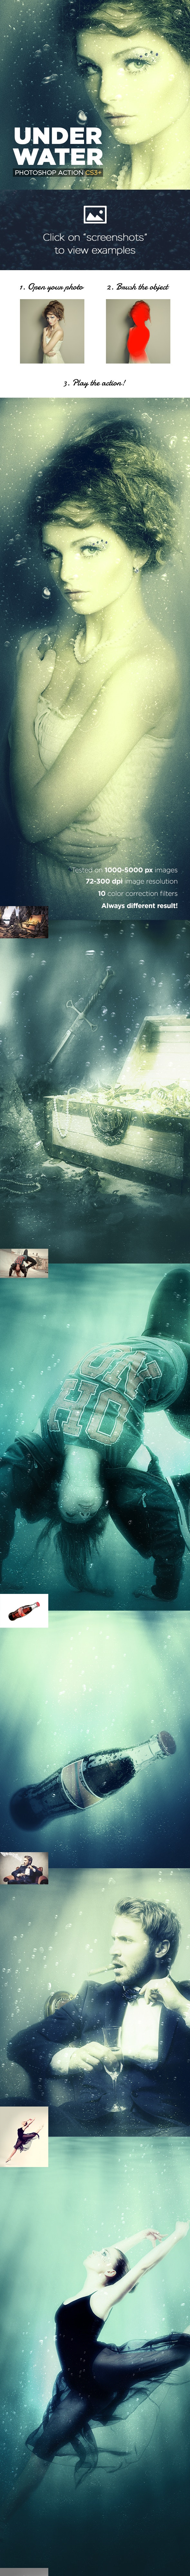 Underwater Photoshop Action CS3+ - Photo Effects Actions